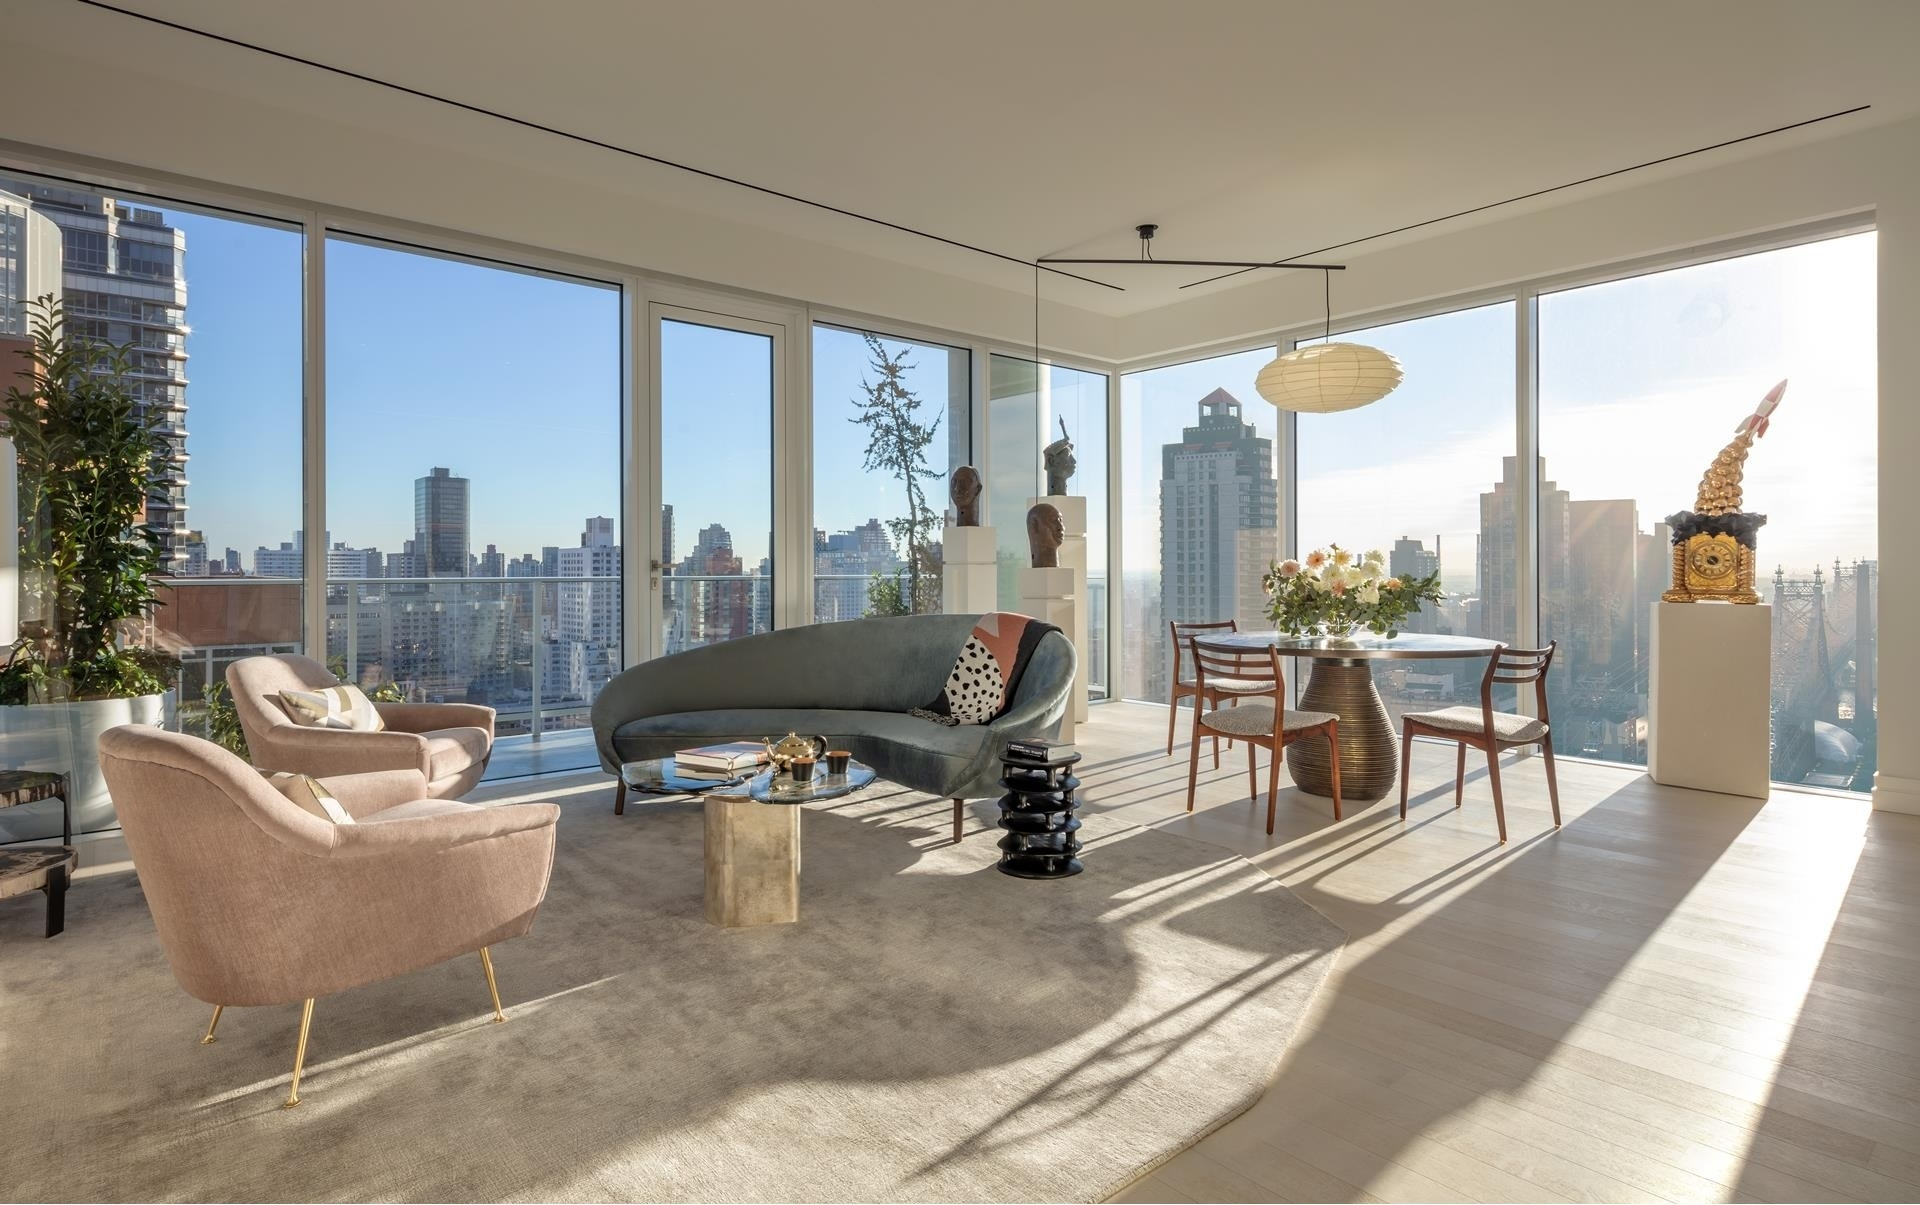 Condominium for Sale at 200 East 59th St, 24D Midtown Manhattan, New York, NY 10022